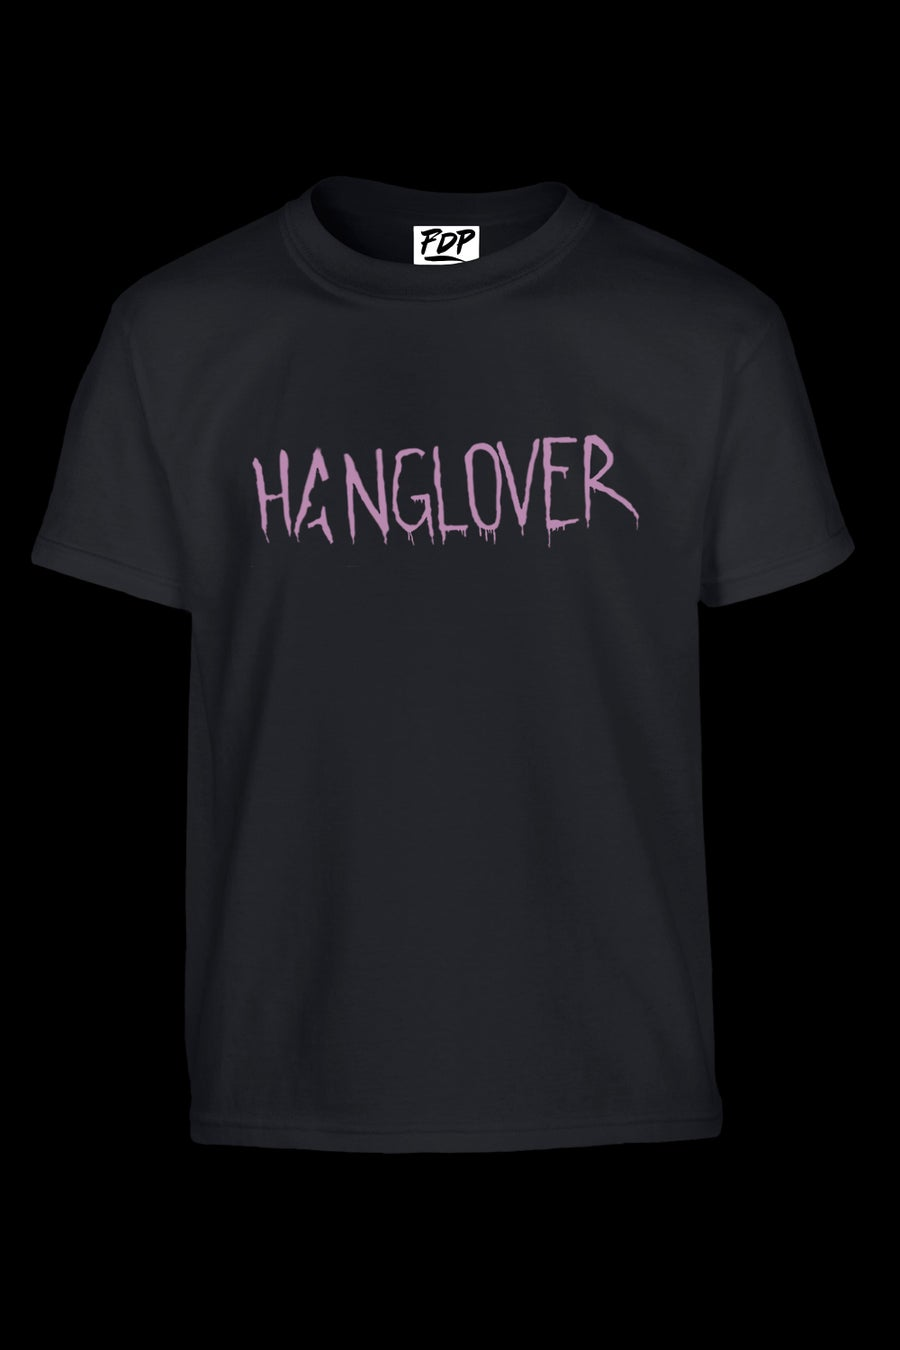 Image of Hanglover Unisex Black